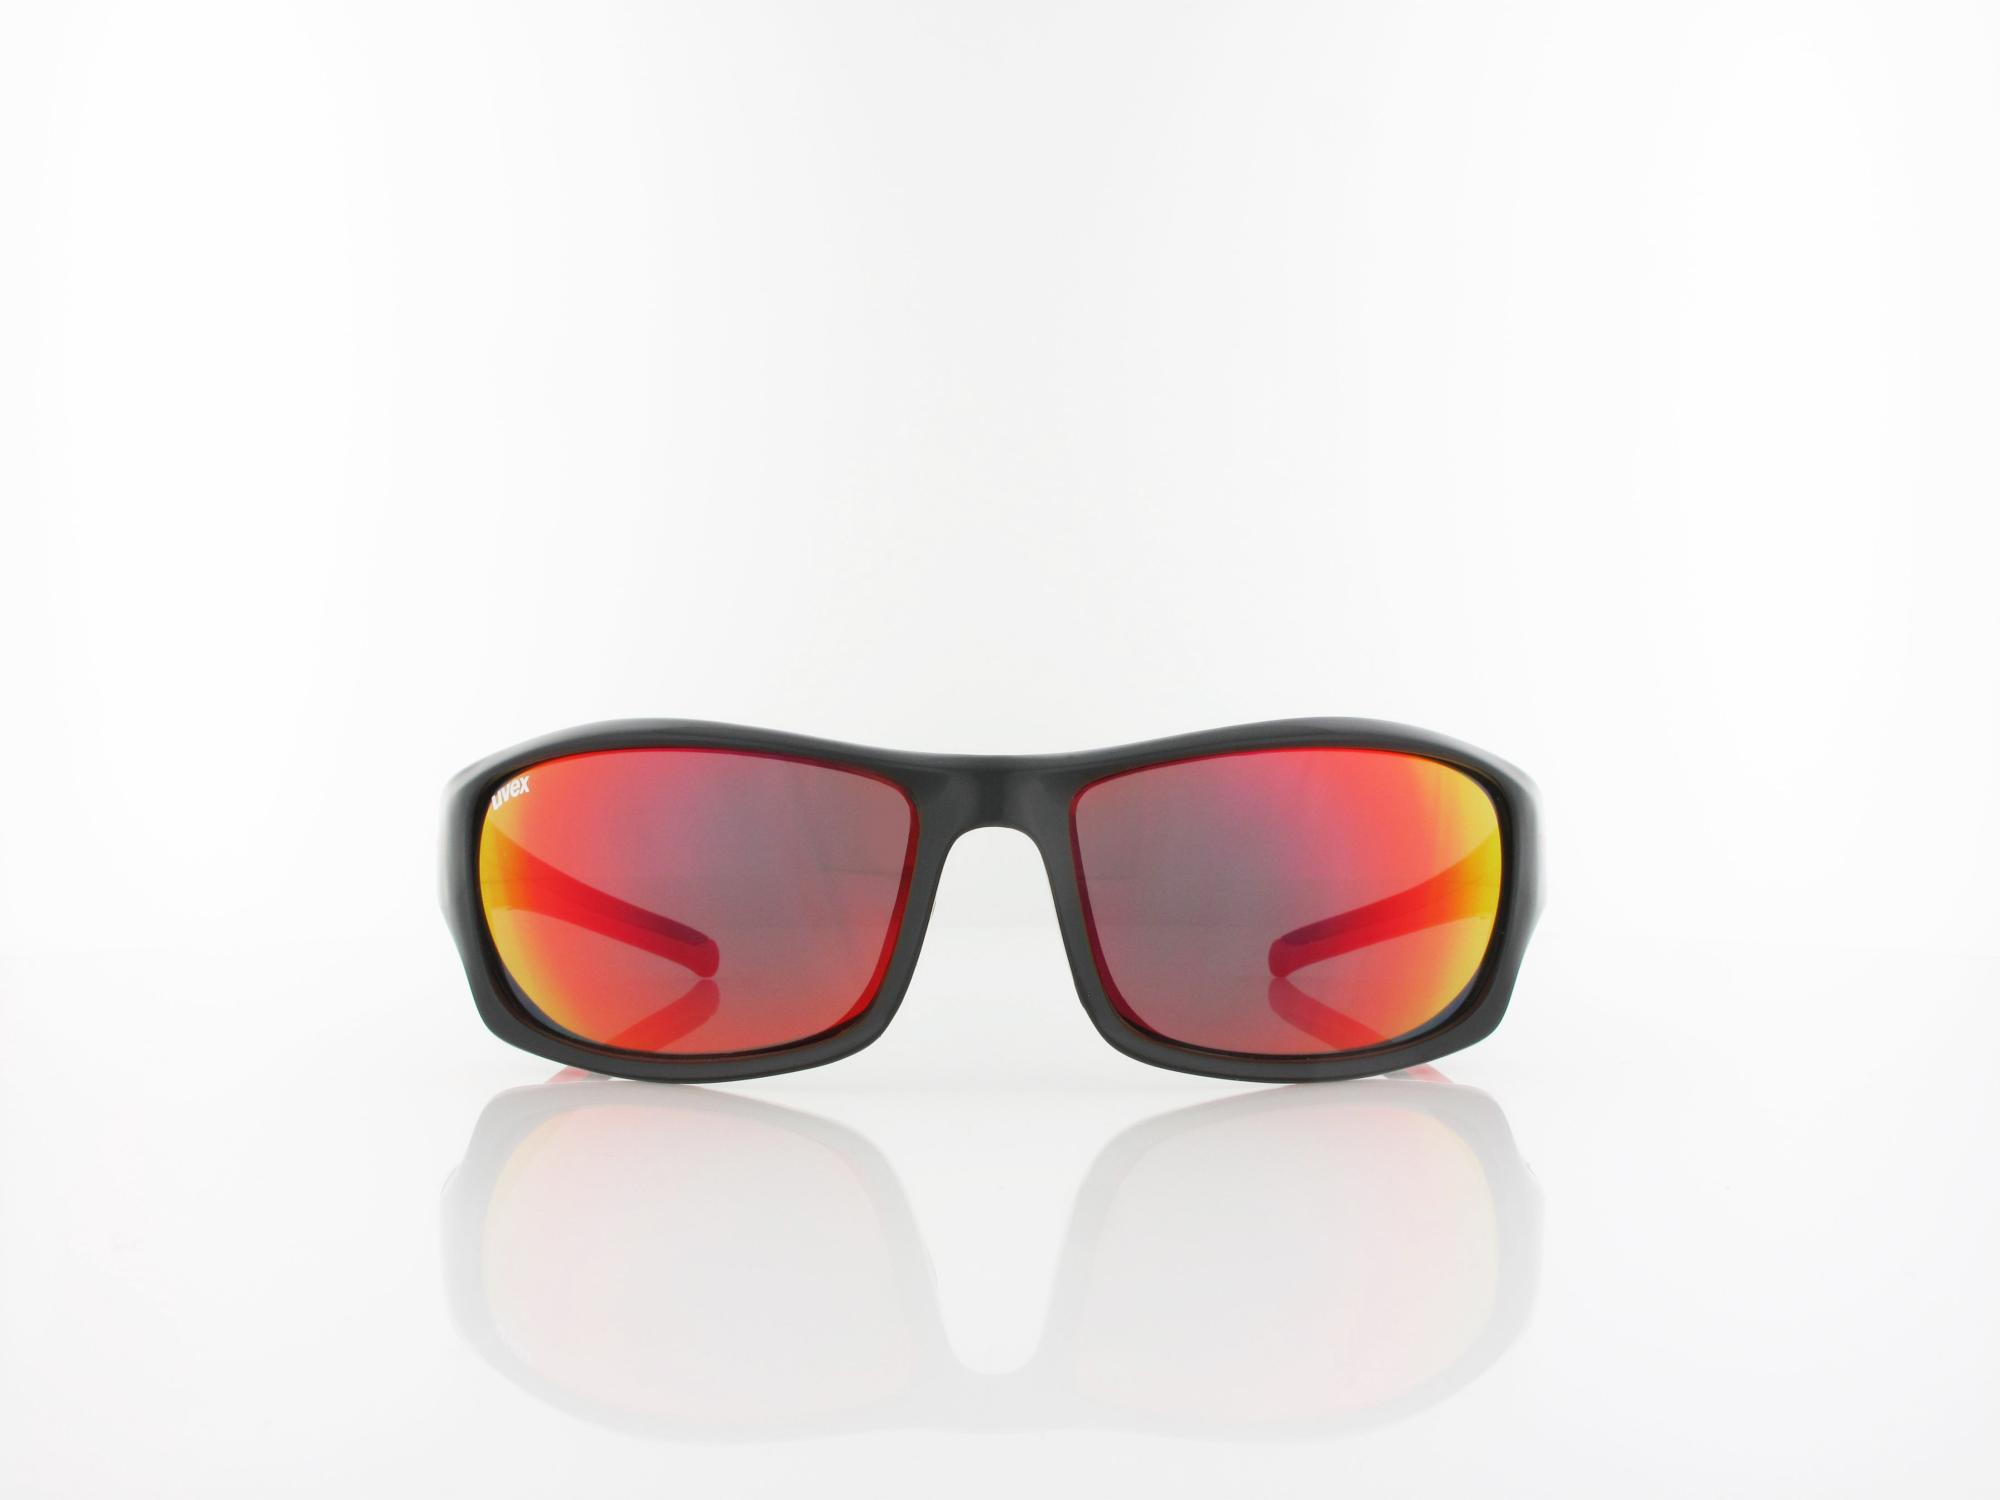 UVEX | Sportstyle 211 S530613 2213 64 | black red / mirror red